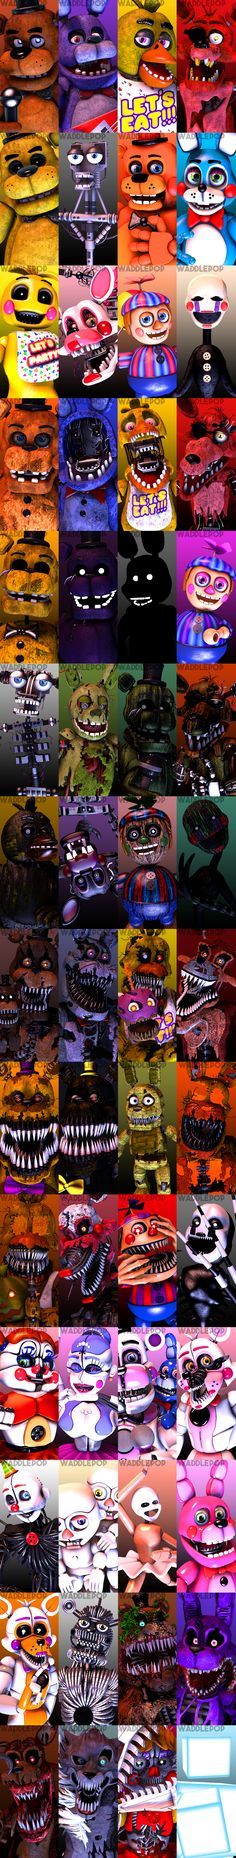 I LOVE FNAF these characters are like family at this point